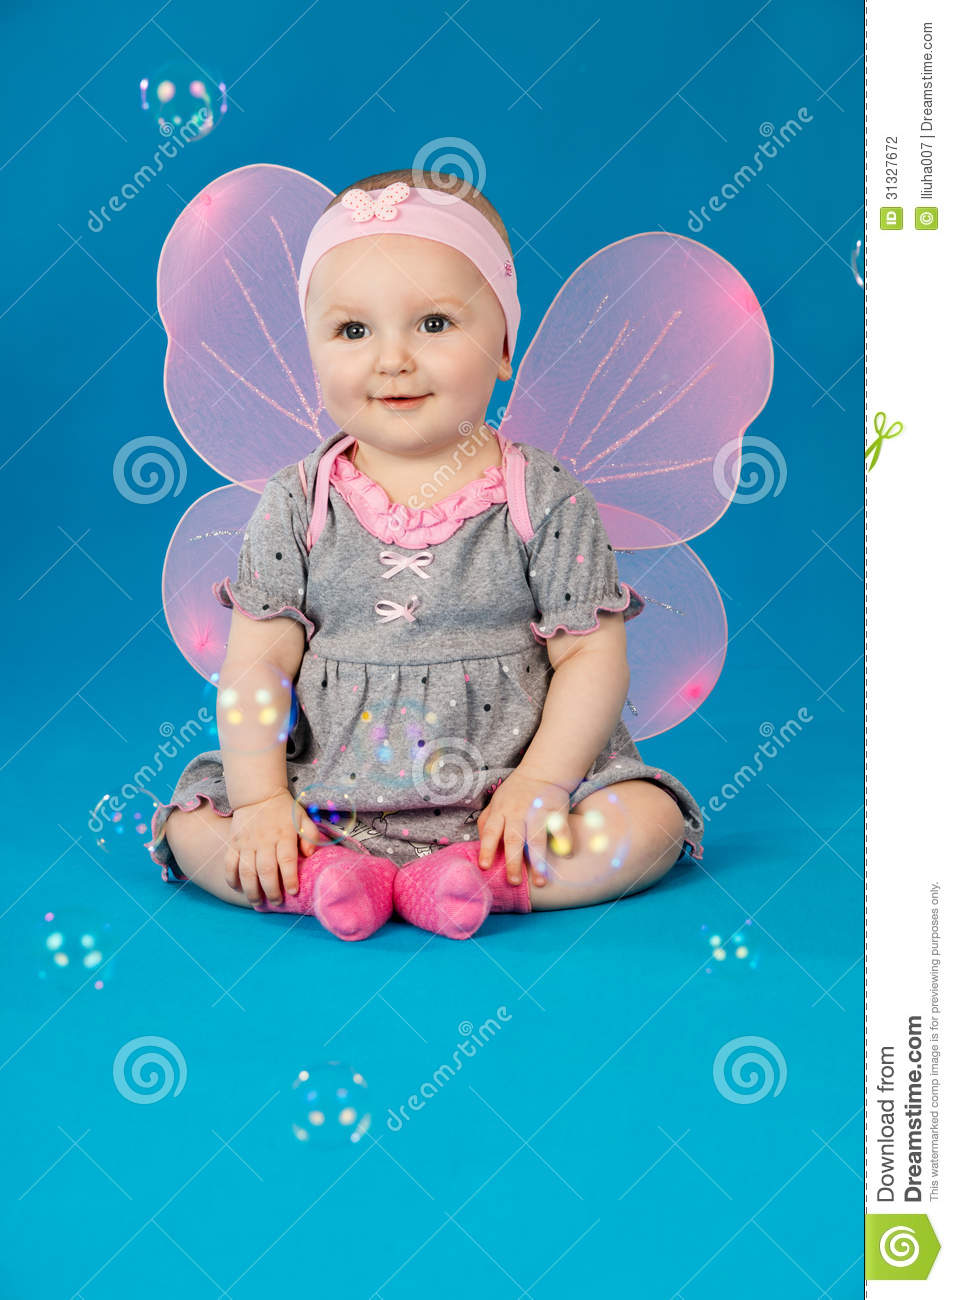 Baby In Costume Butterfly Stock Photography - Image: 31327672